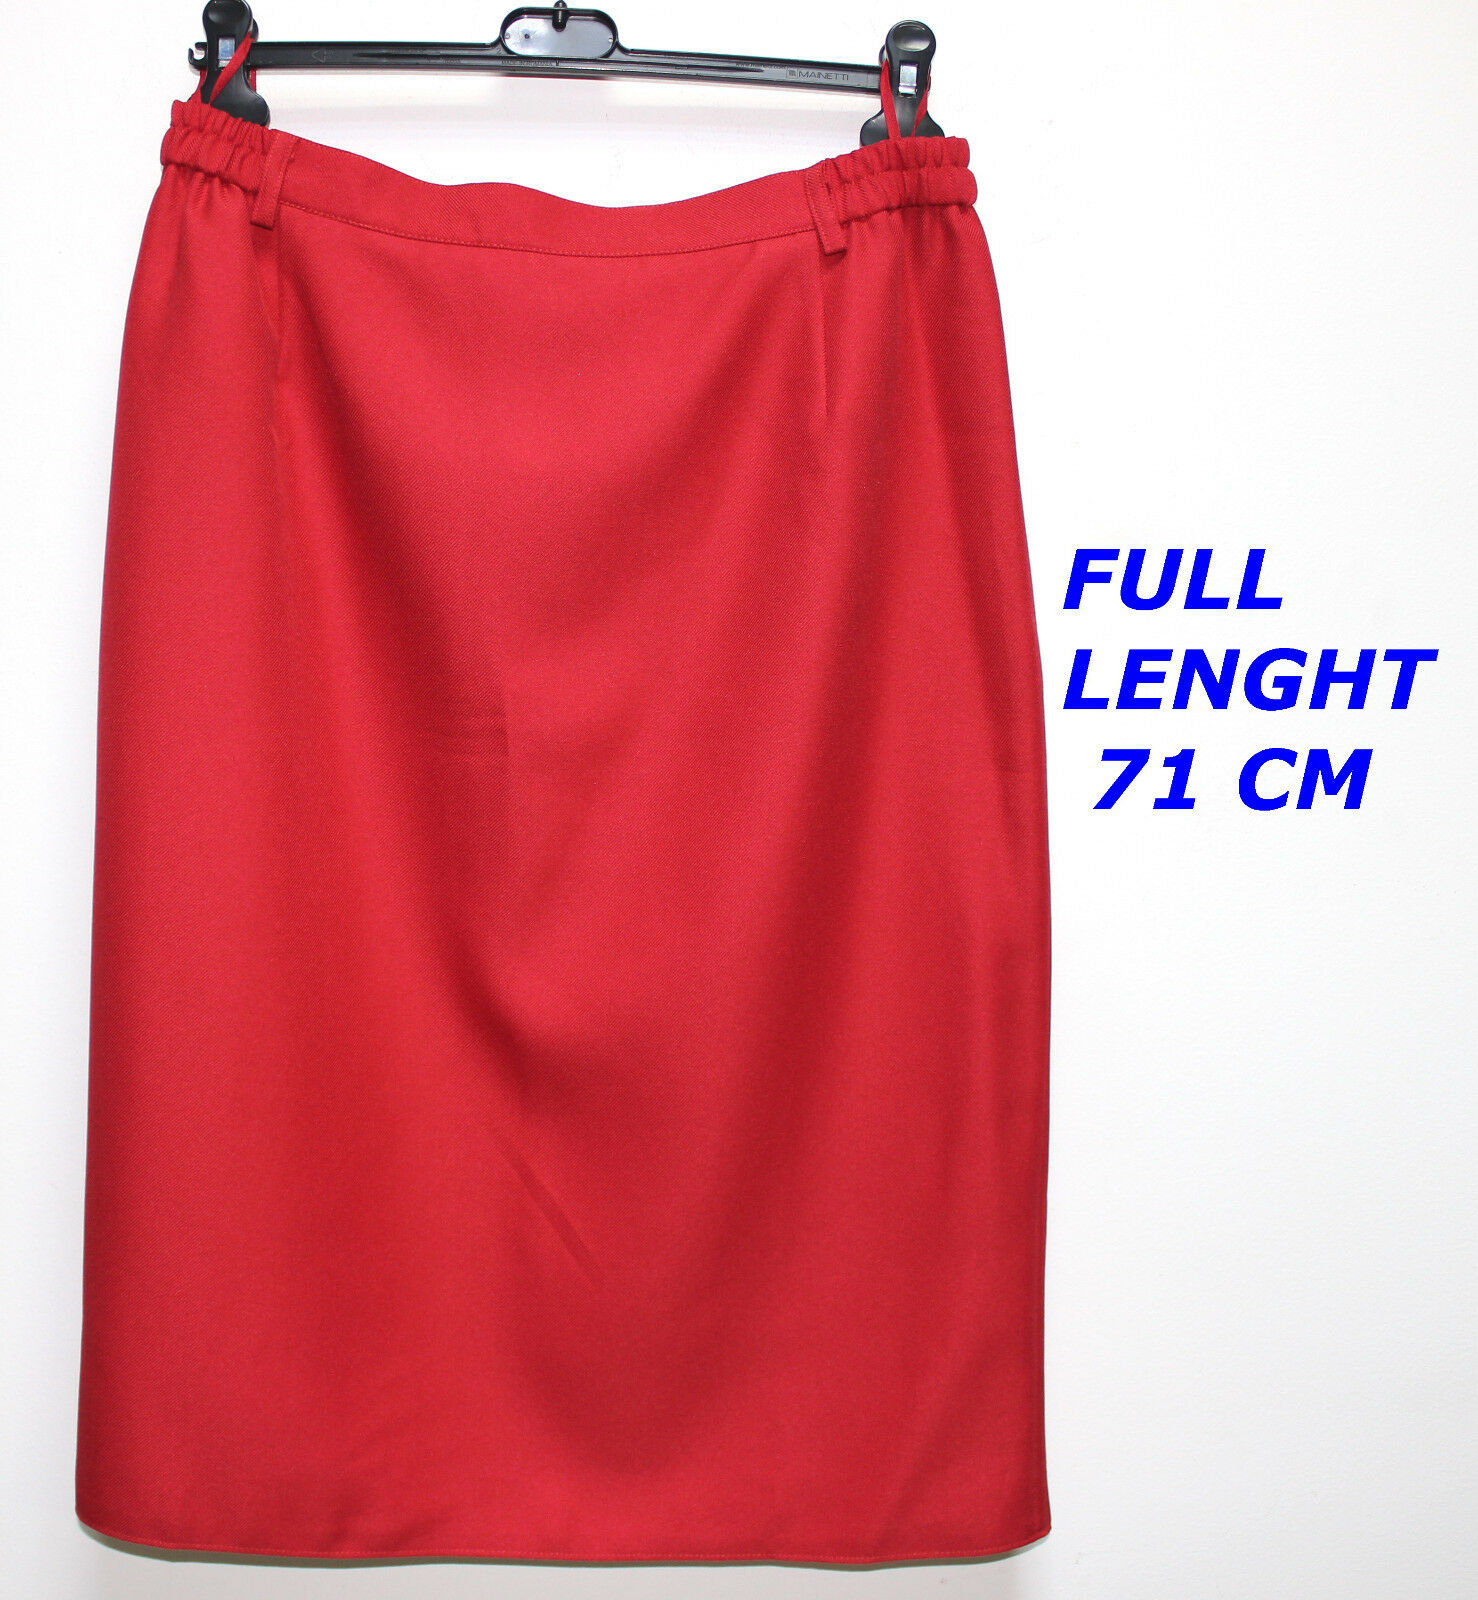 FAIR LADY MODELL TREVIRA LADIES LADY WOMAN RED COLOR SKIRT ELASTIC WAIST